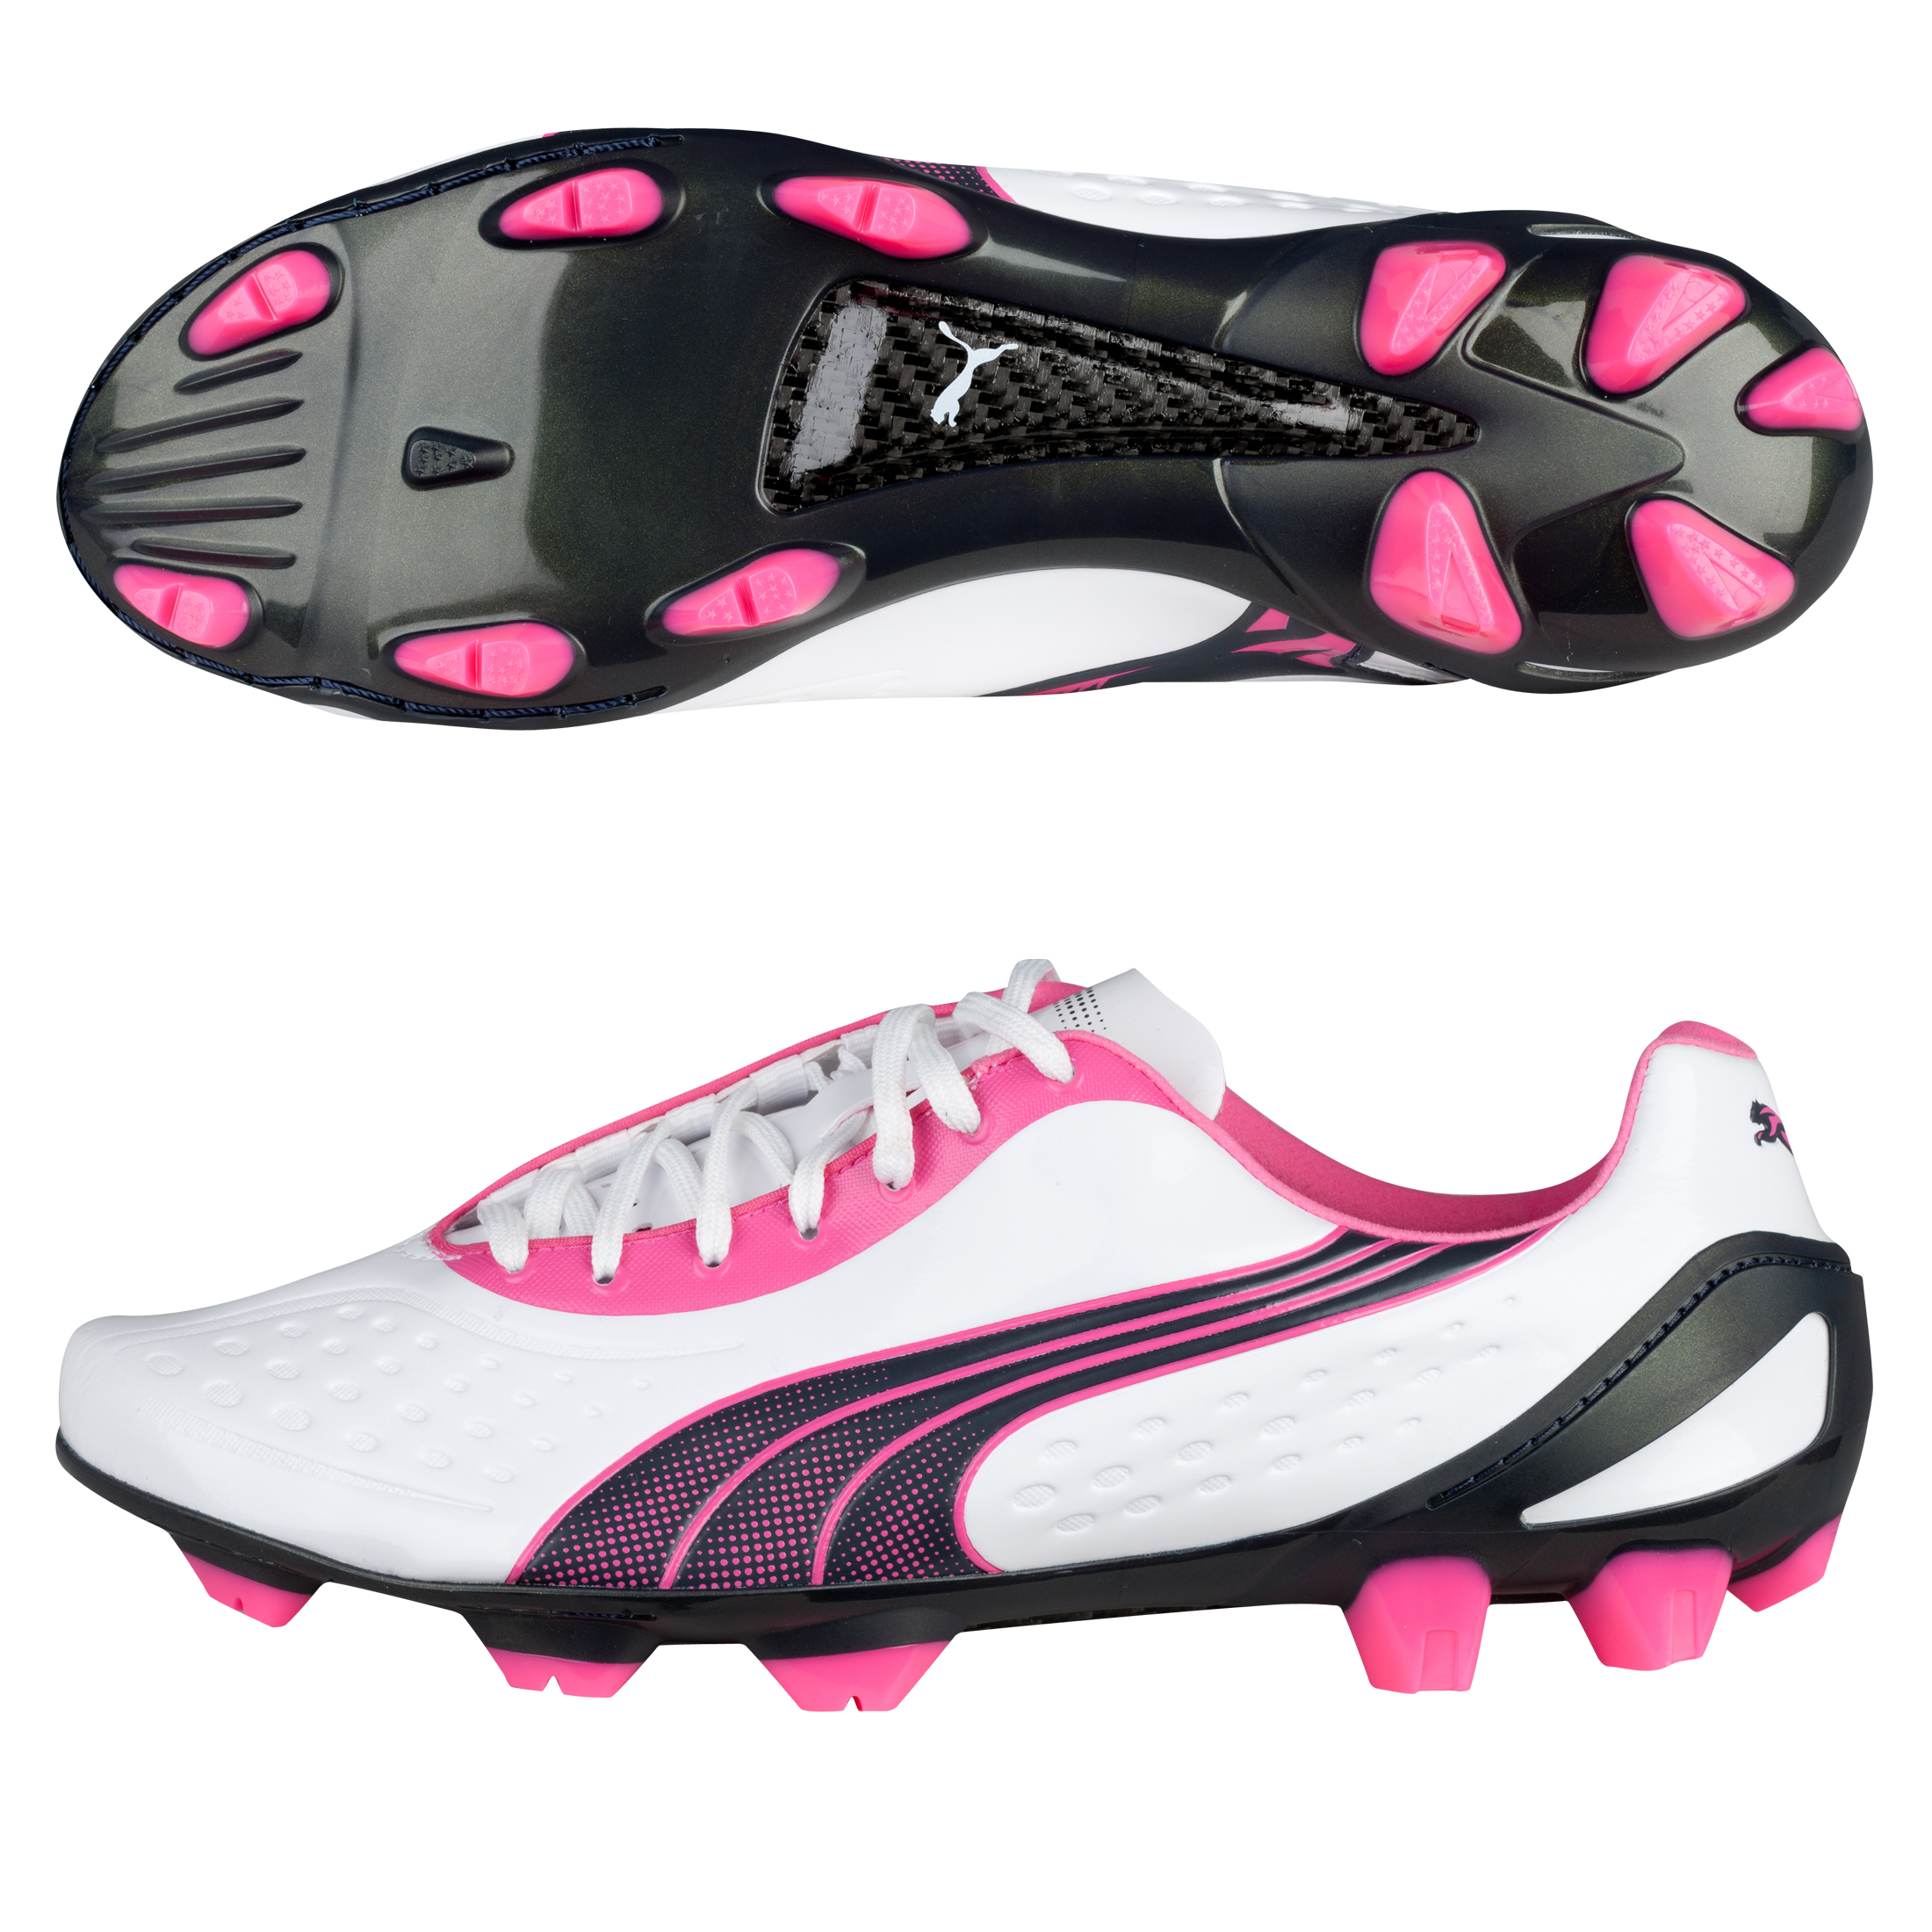 Puma v1.11 Super Light Firm Ground Football Boots  - White Pearl/New Navy/Fluo Pink